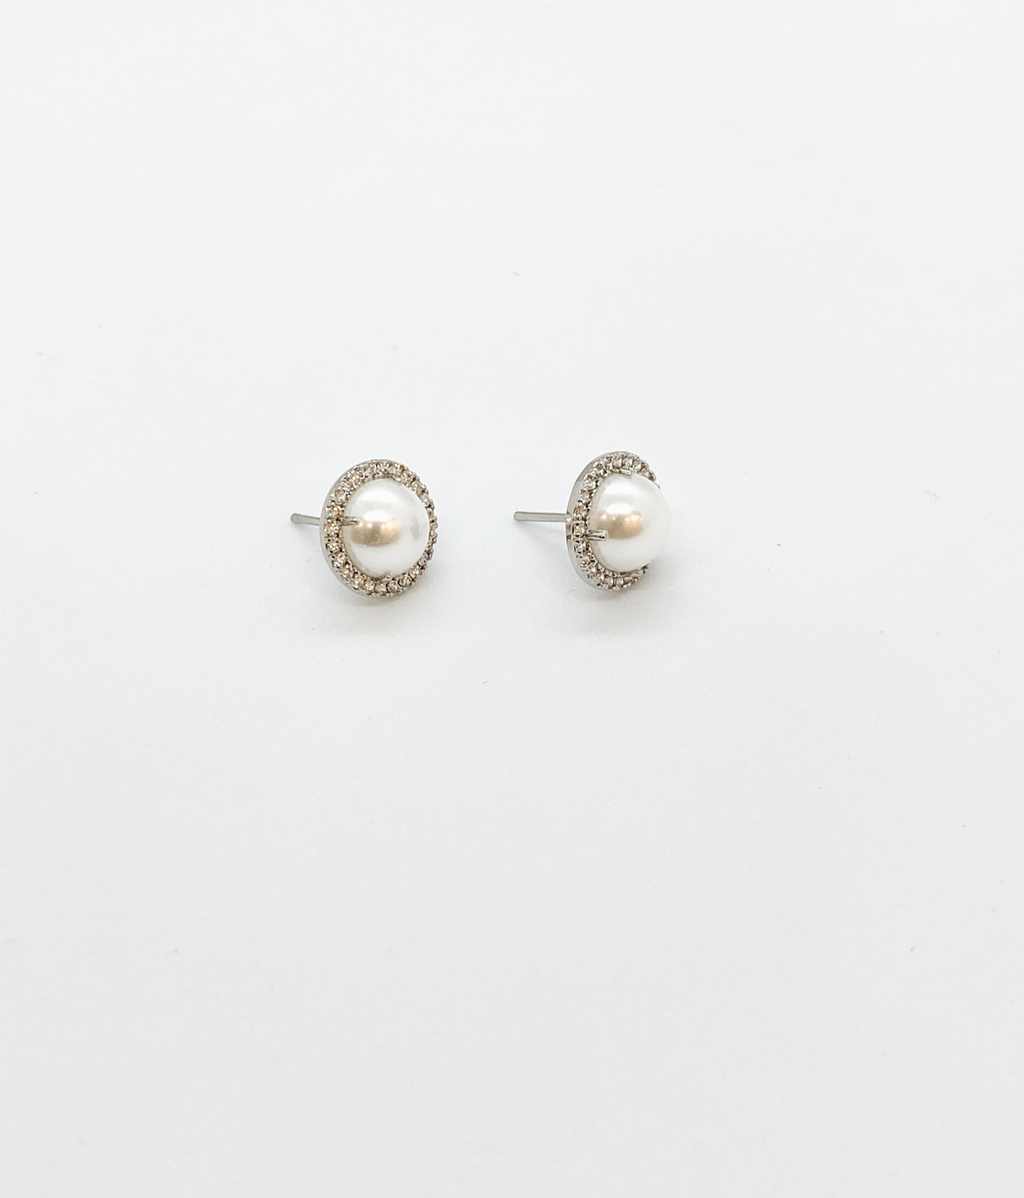 White Gold Pearl Stud